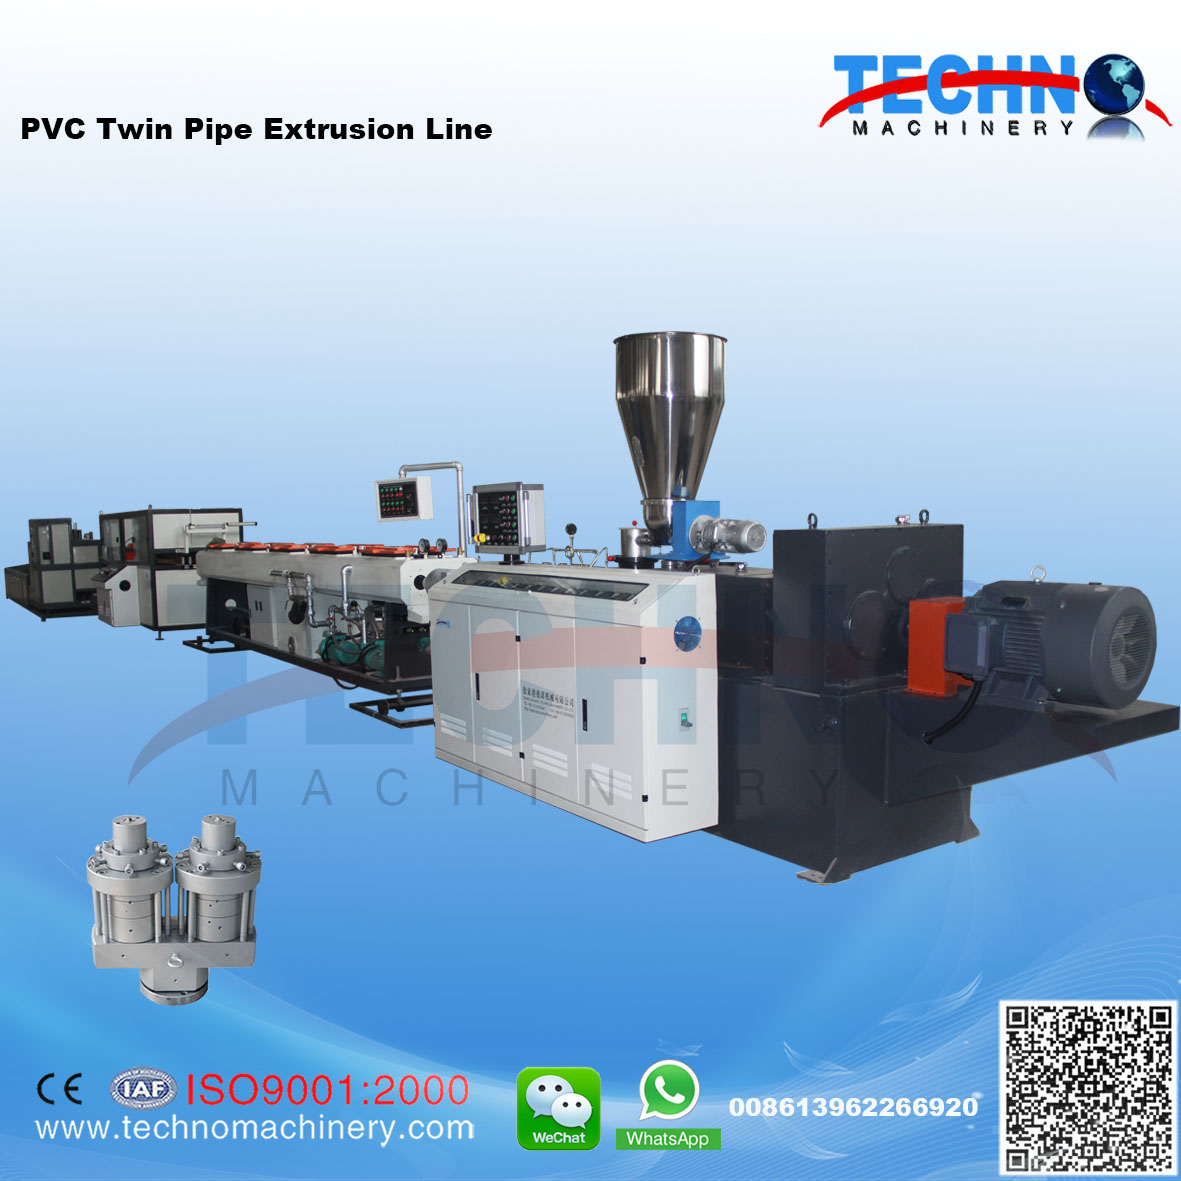 PVC Twin Pipe/Four Pipe Extrusion/Production Line